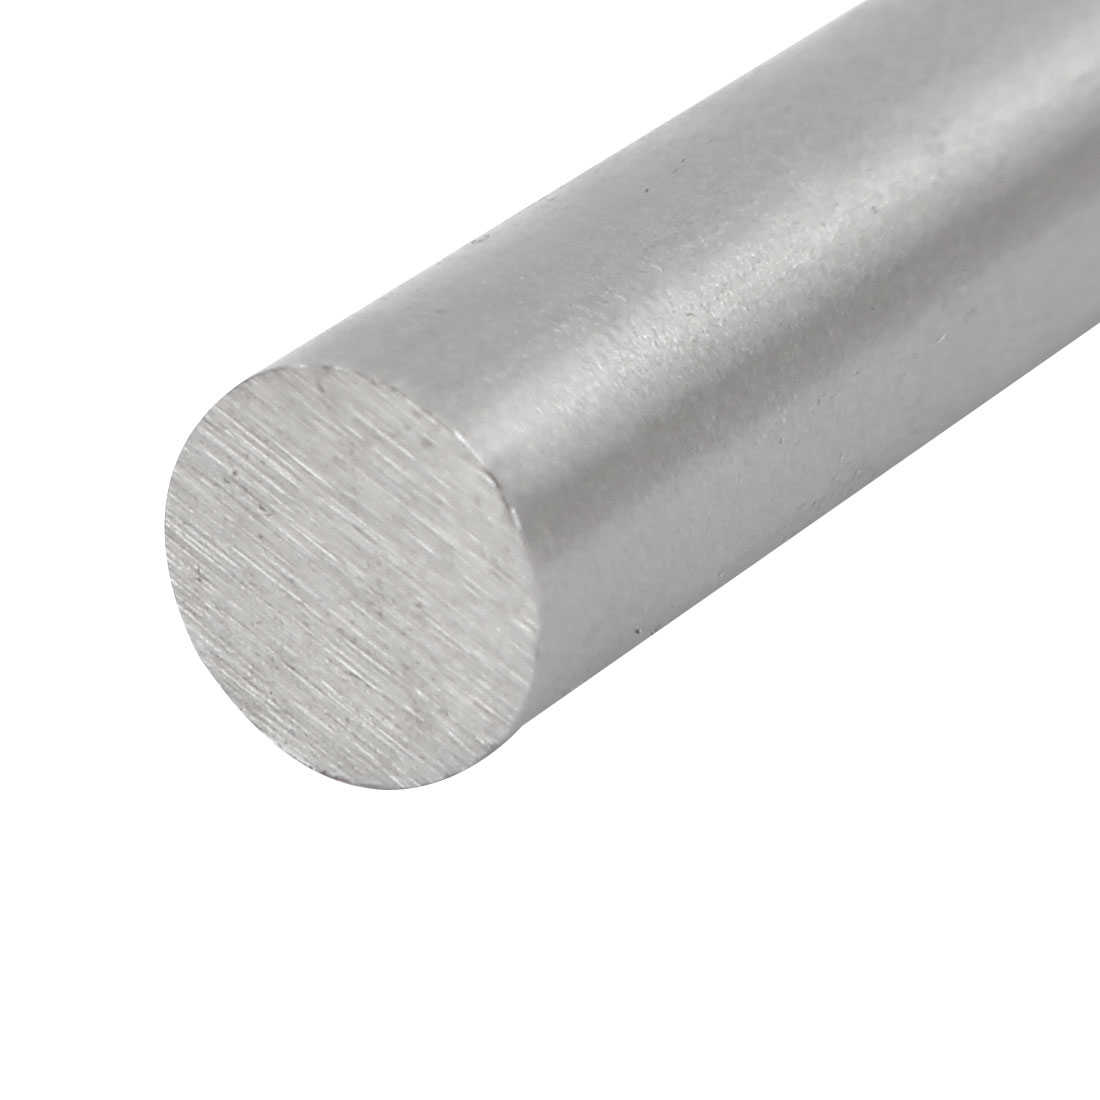 10mm Dia 100mm Length HSS Round Shaft Rod Bar Lathe Tools Gray